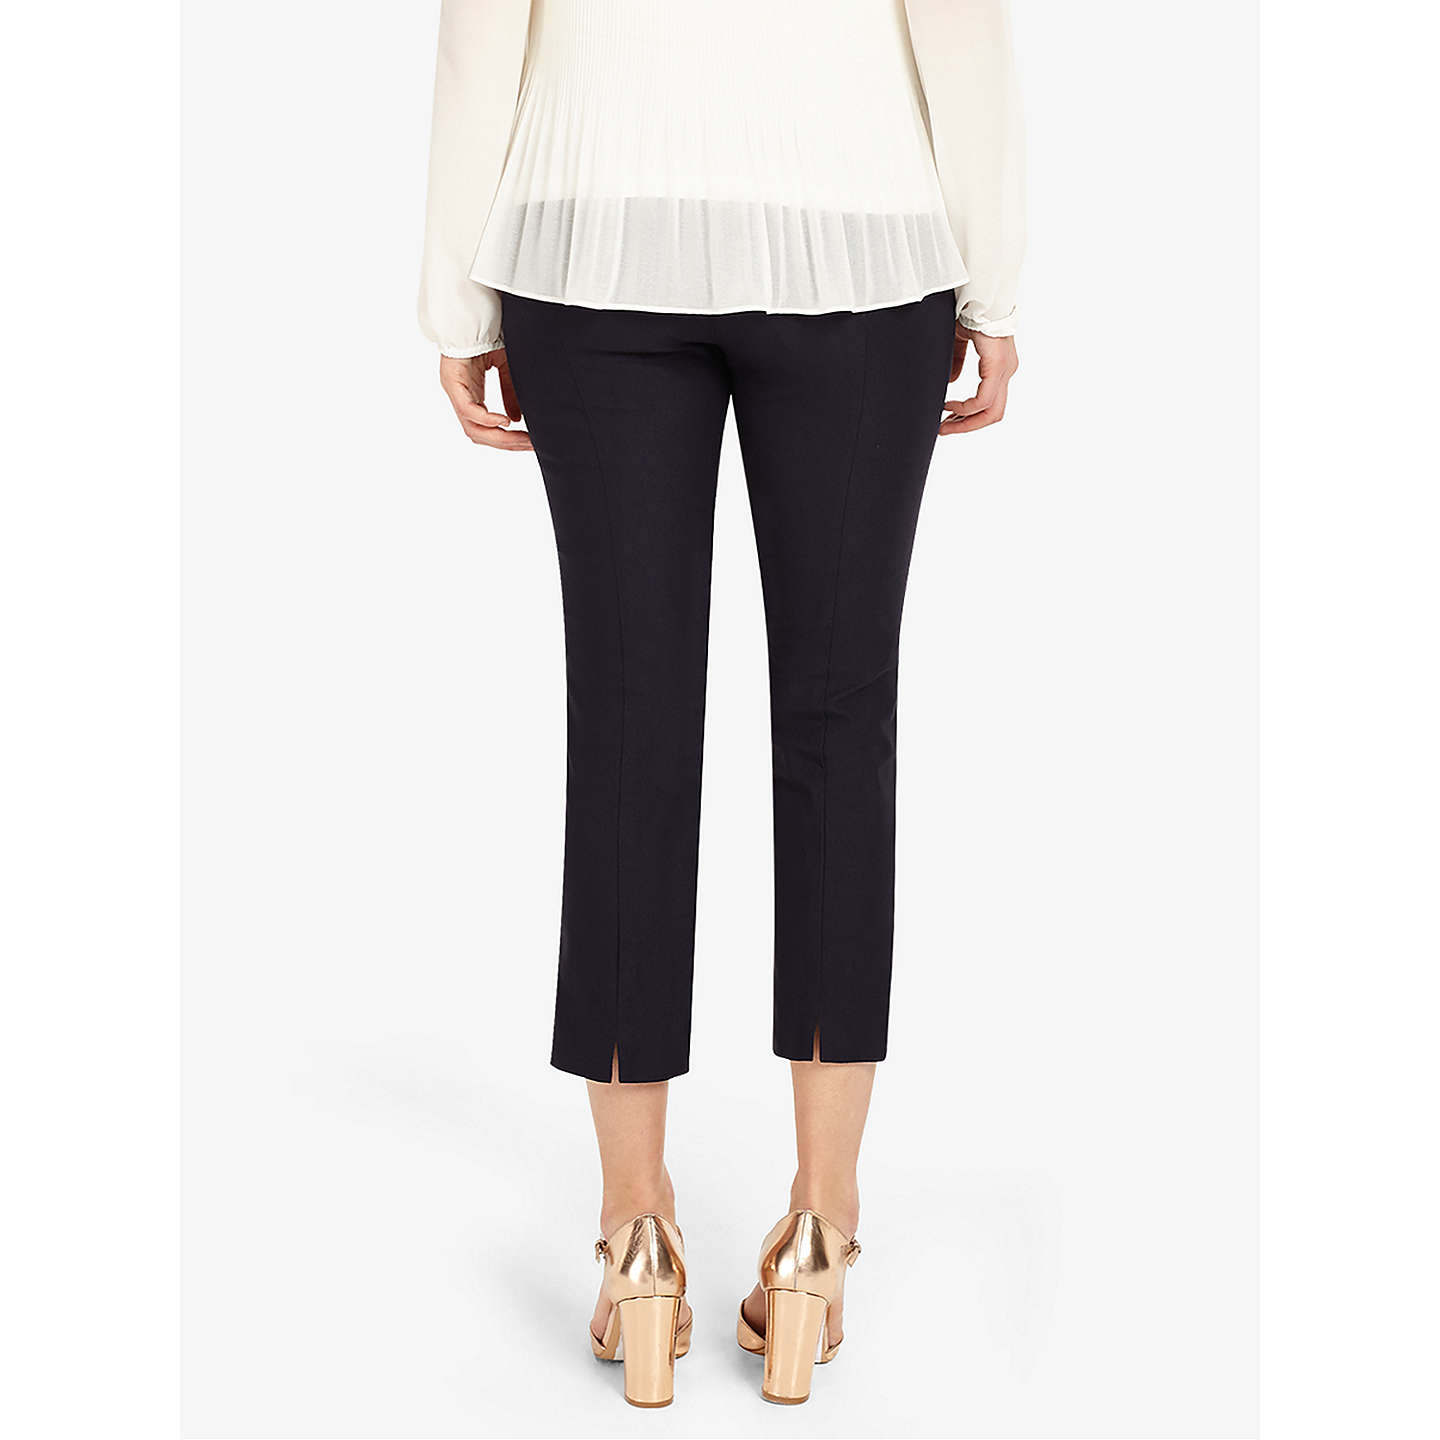 BuyPhase Eight Halle Cropped Trousers, Navy, 8 Online at johnlewis.com